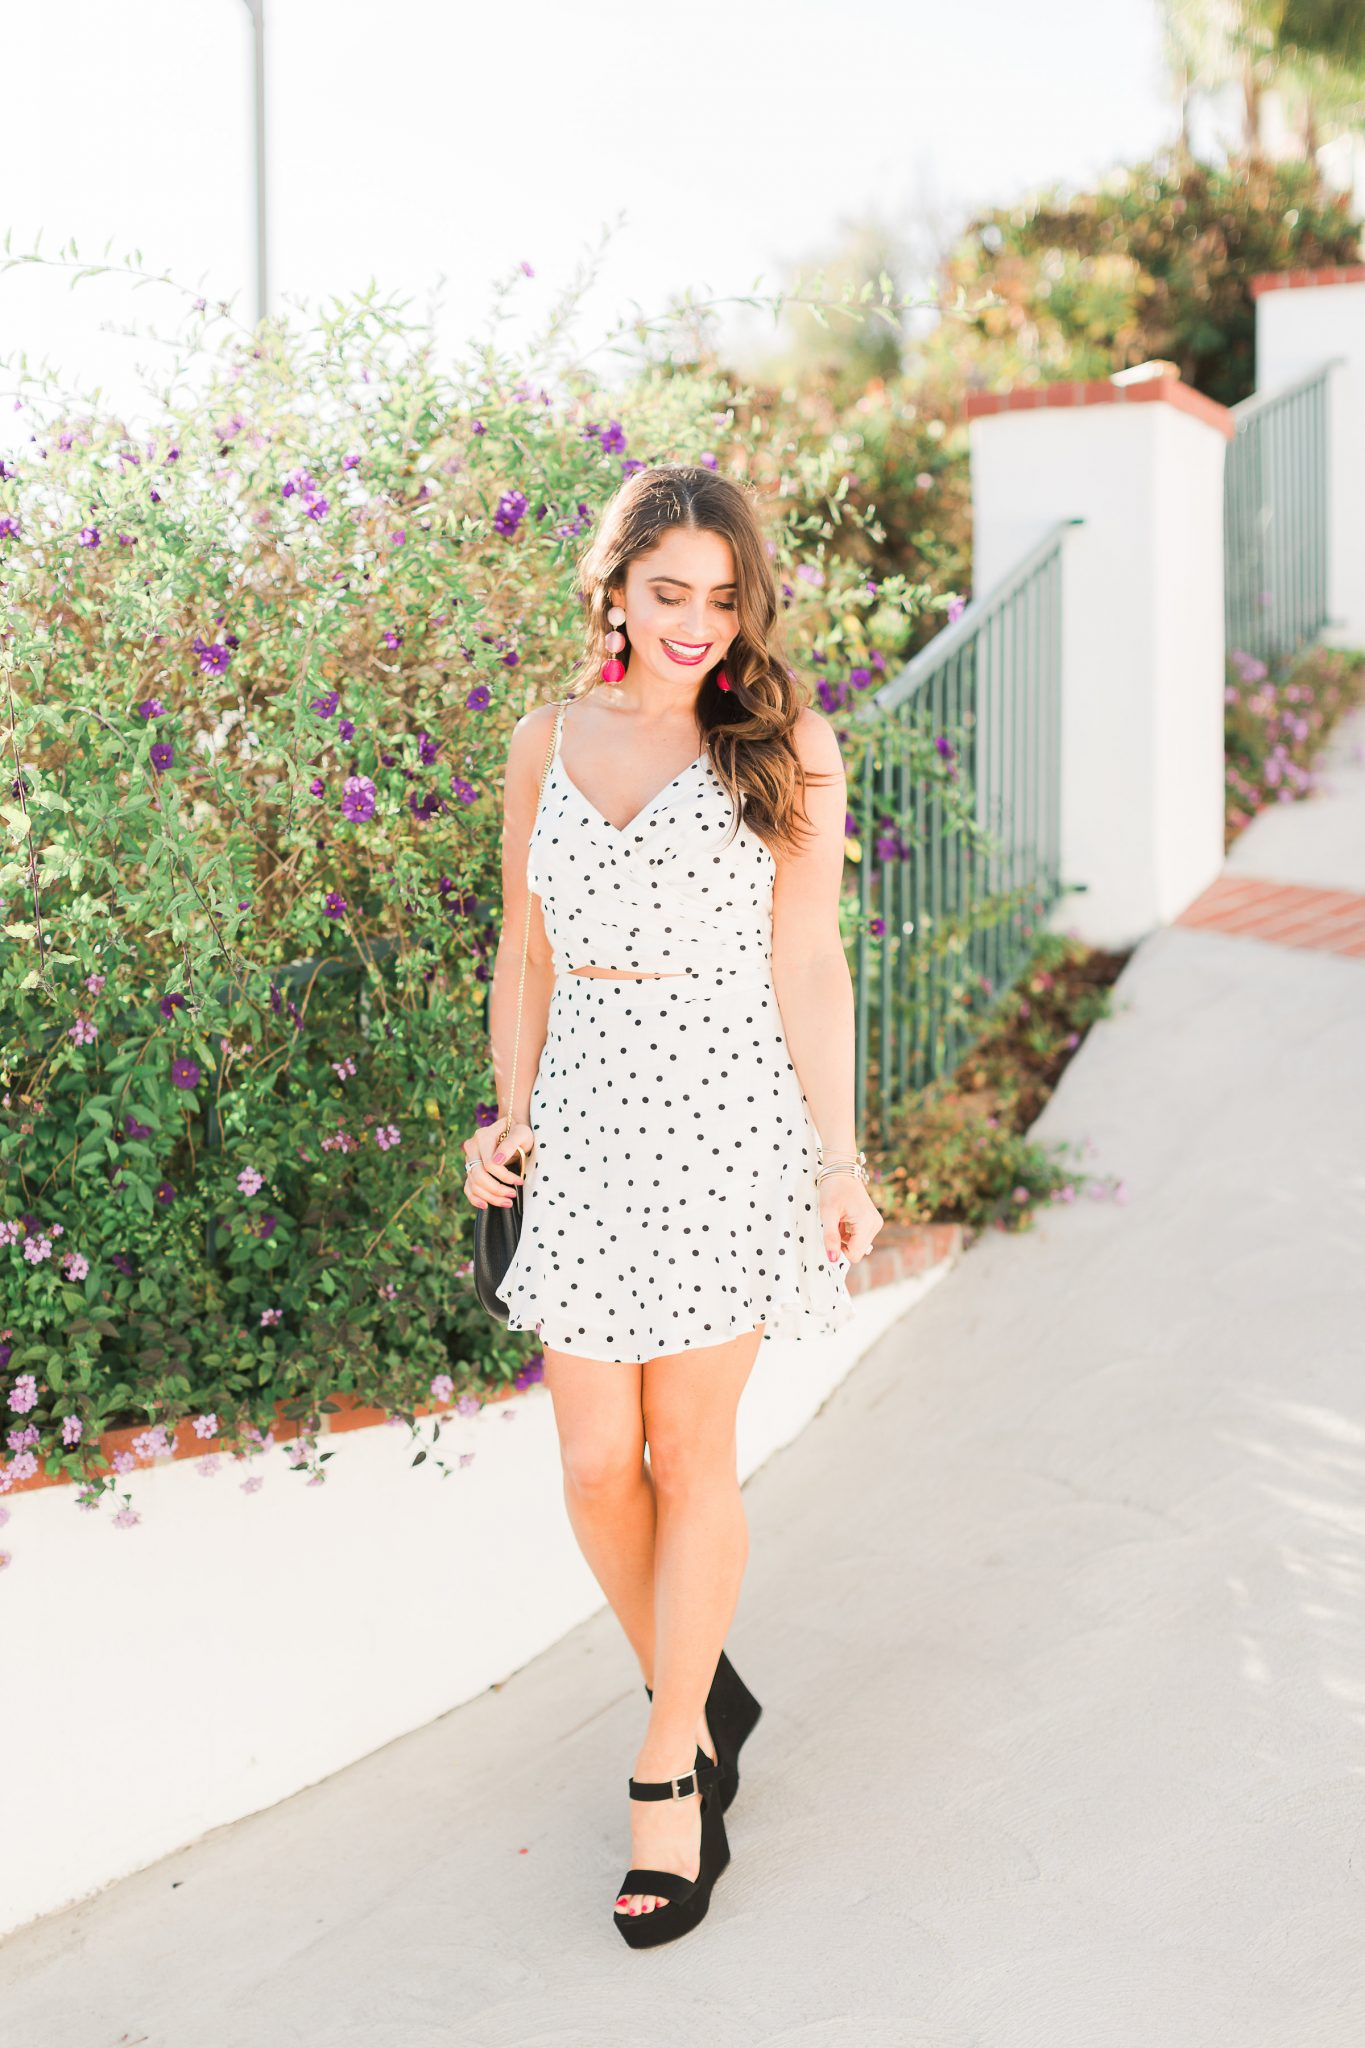 Lush Clothing Polka Dot Set - Polka Dot Clothing styled by popular Orange County fashion blogger, Maxie Elle